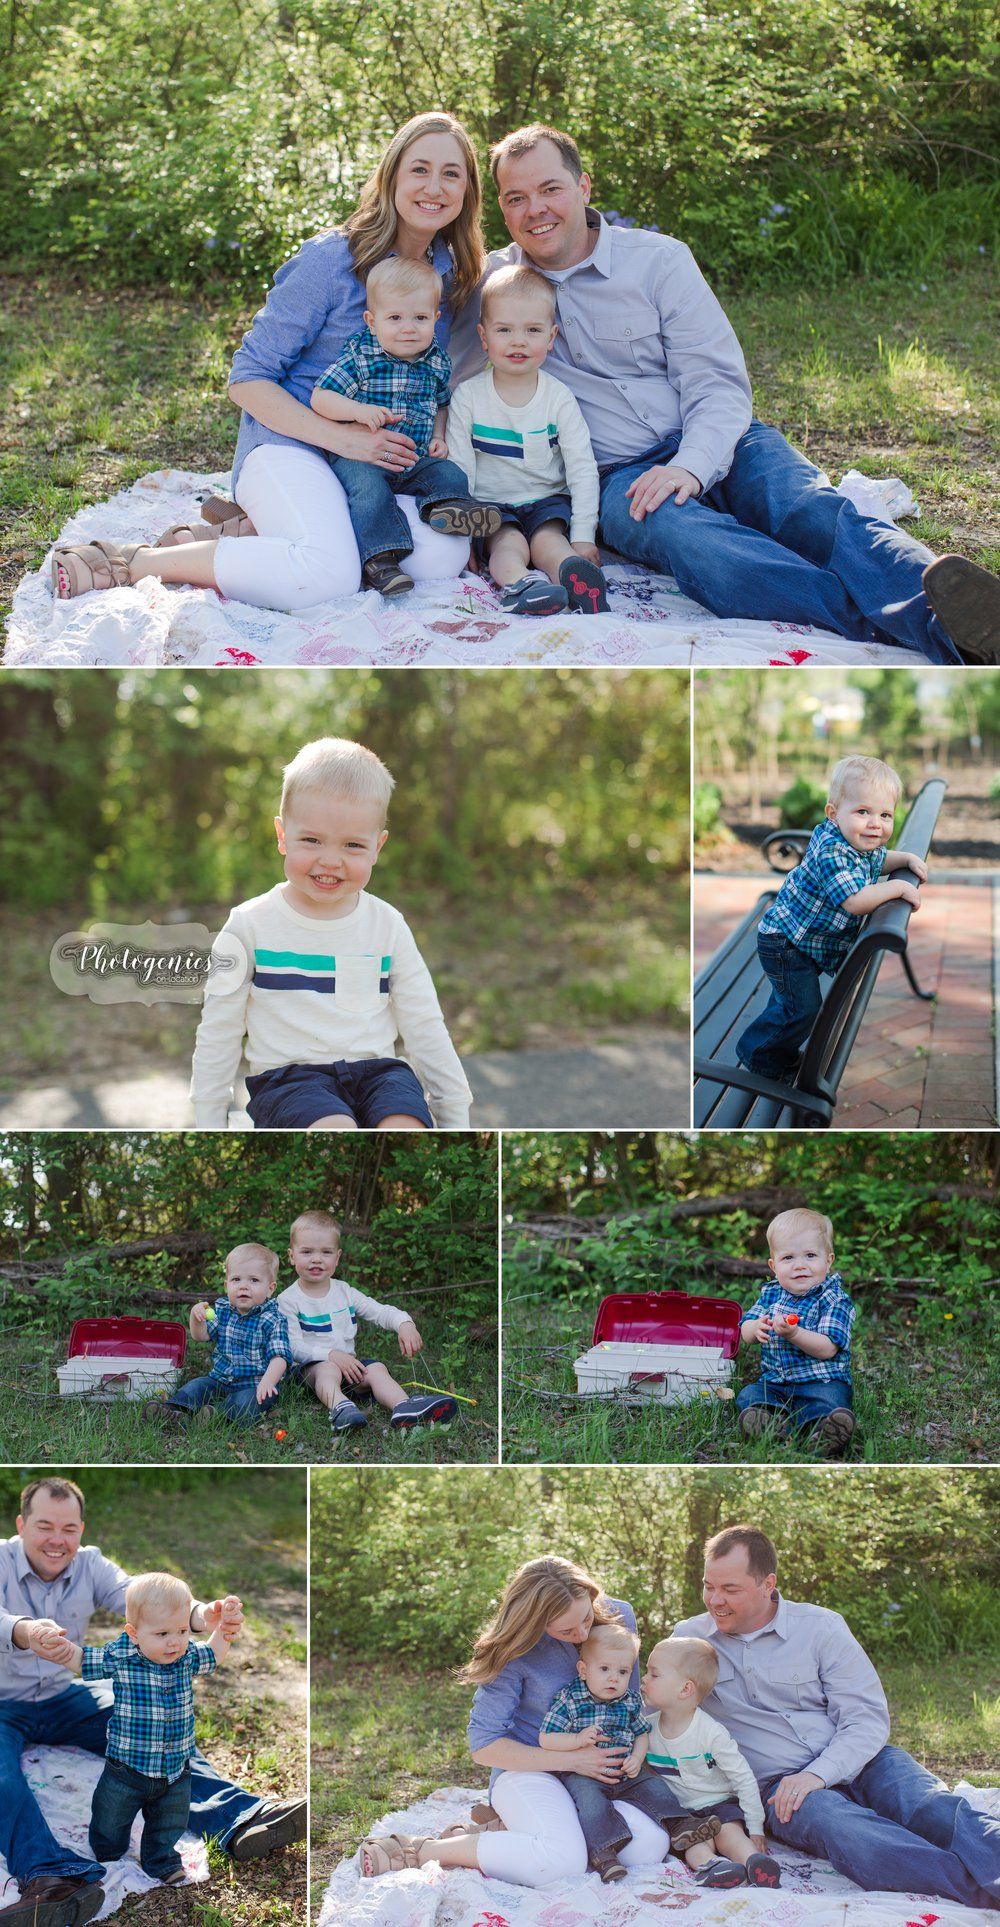 spring_morning_photography_family_of_four_poses_quilt_props_baby_brothers_mom_dad_ideas_photography_missouri_photographer 3